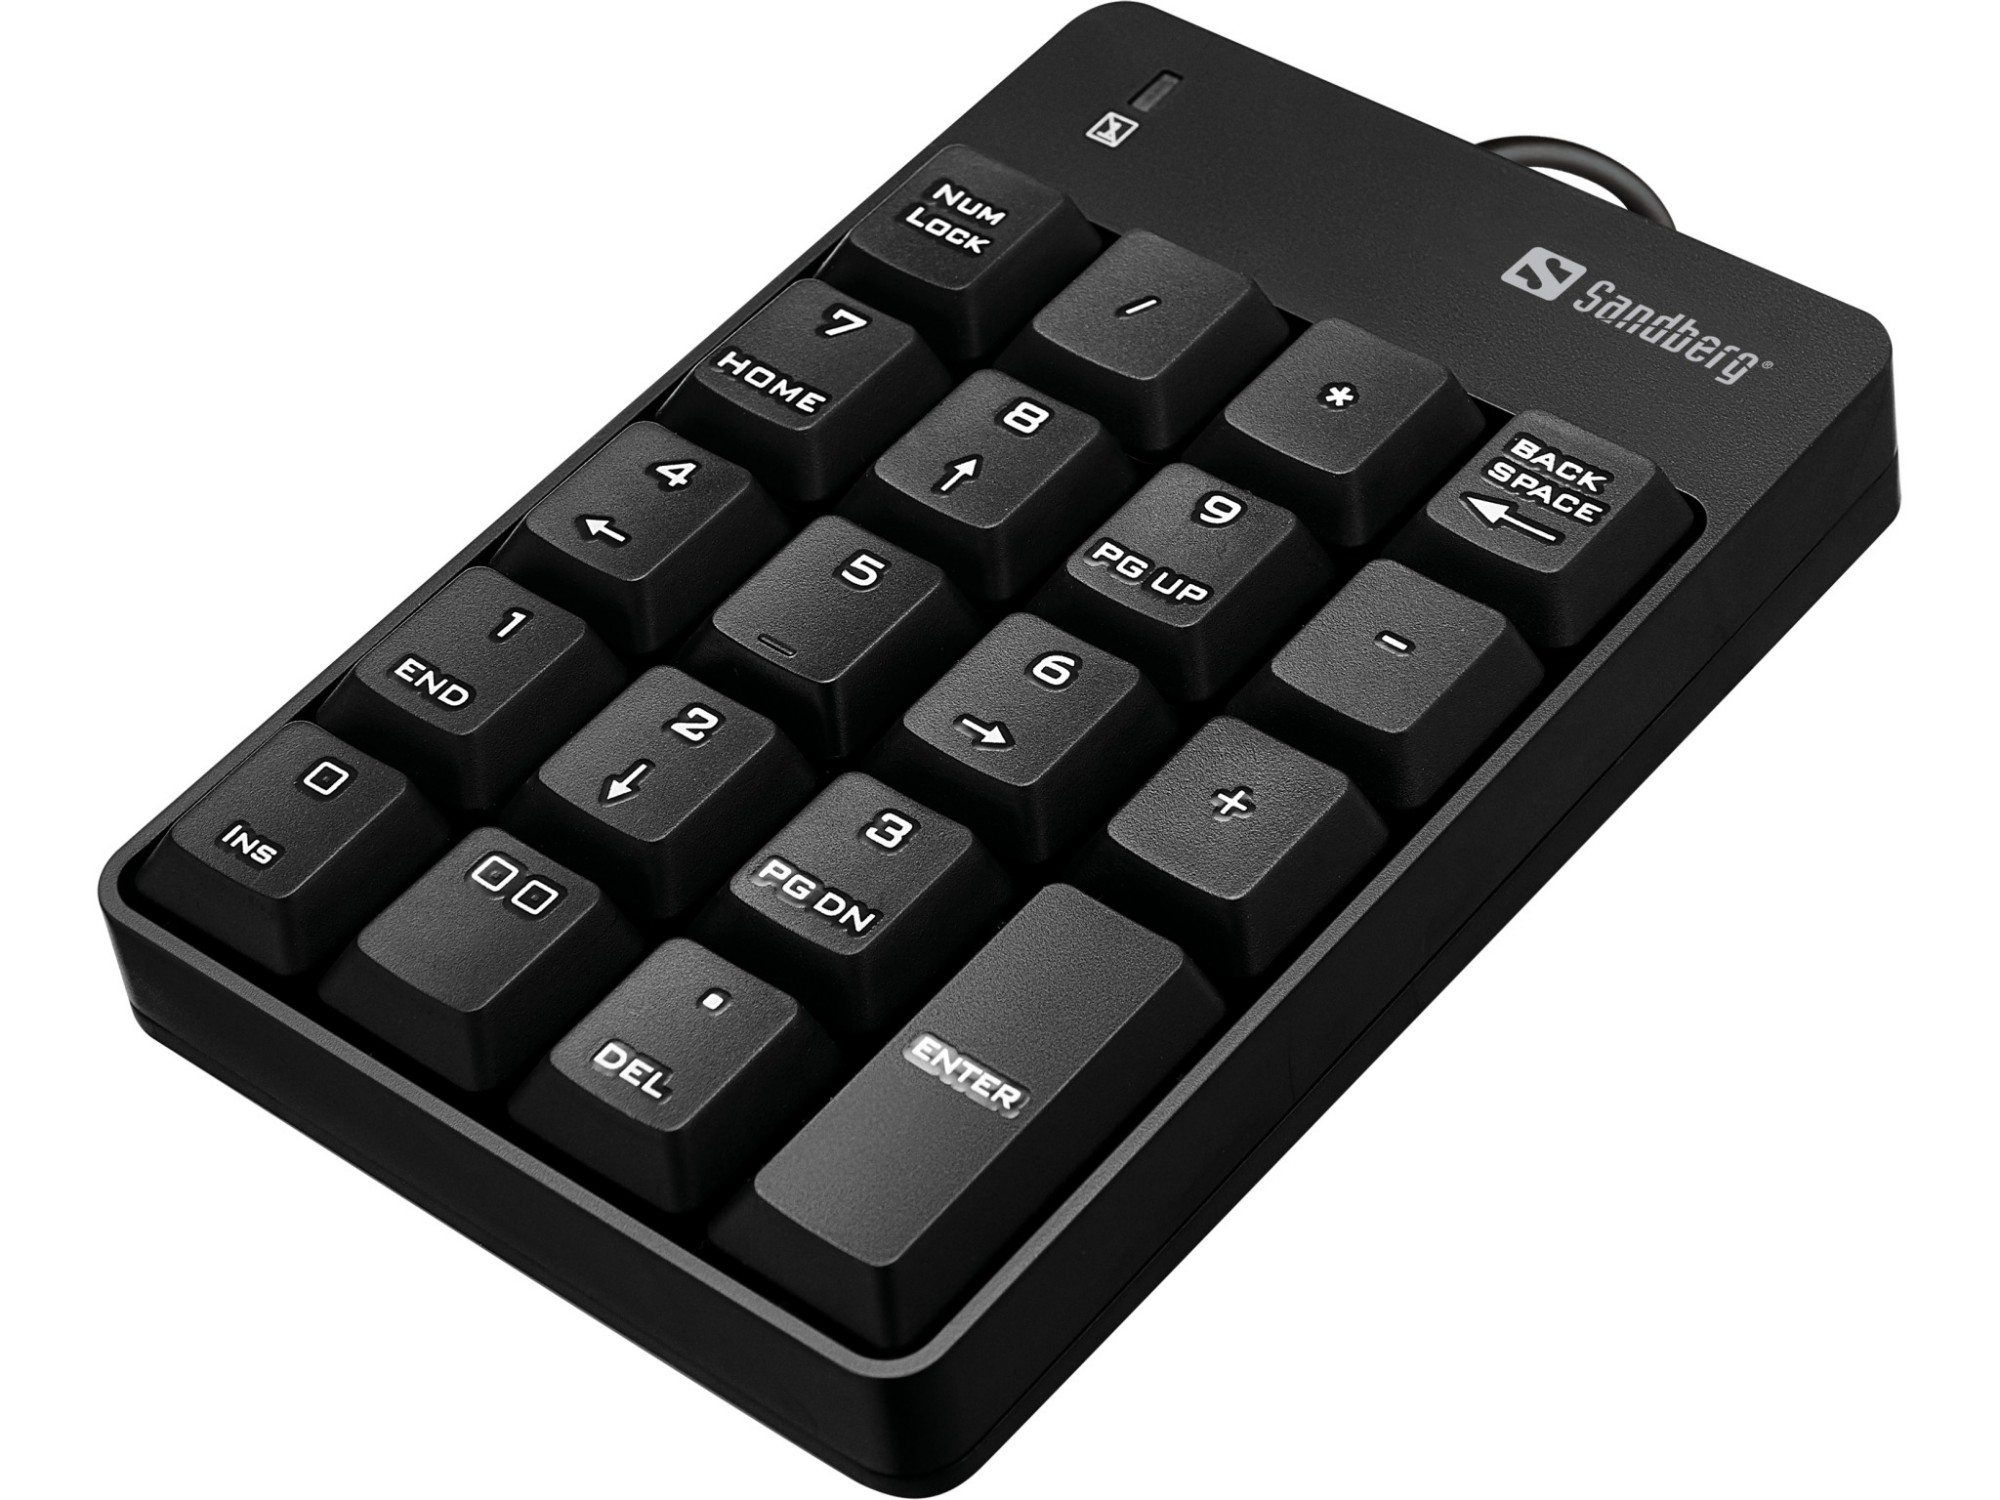 Sandberg USB Wired numeric keypad